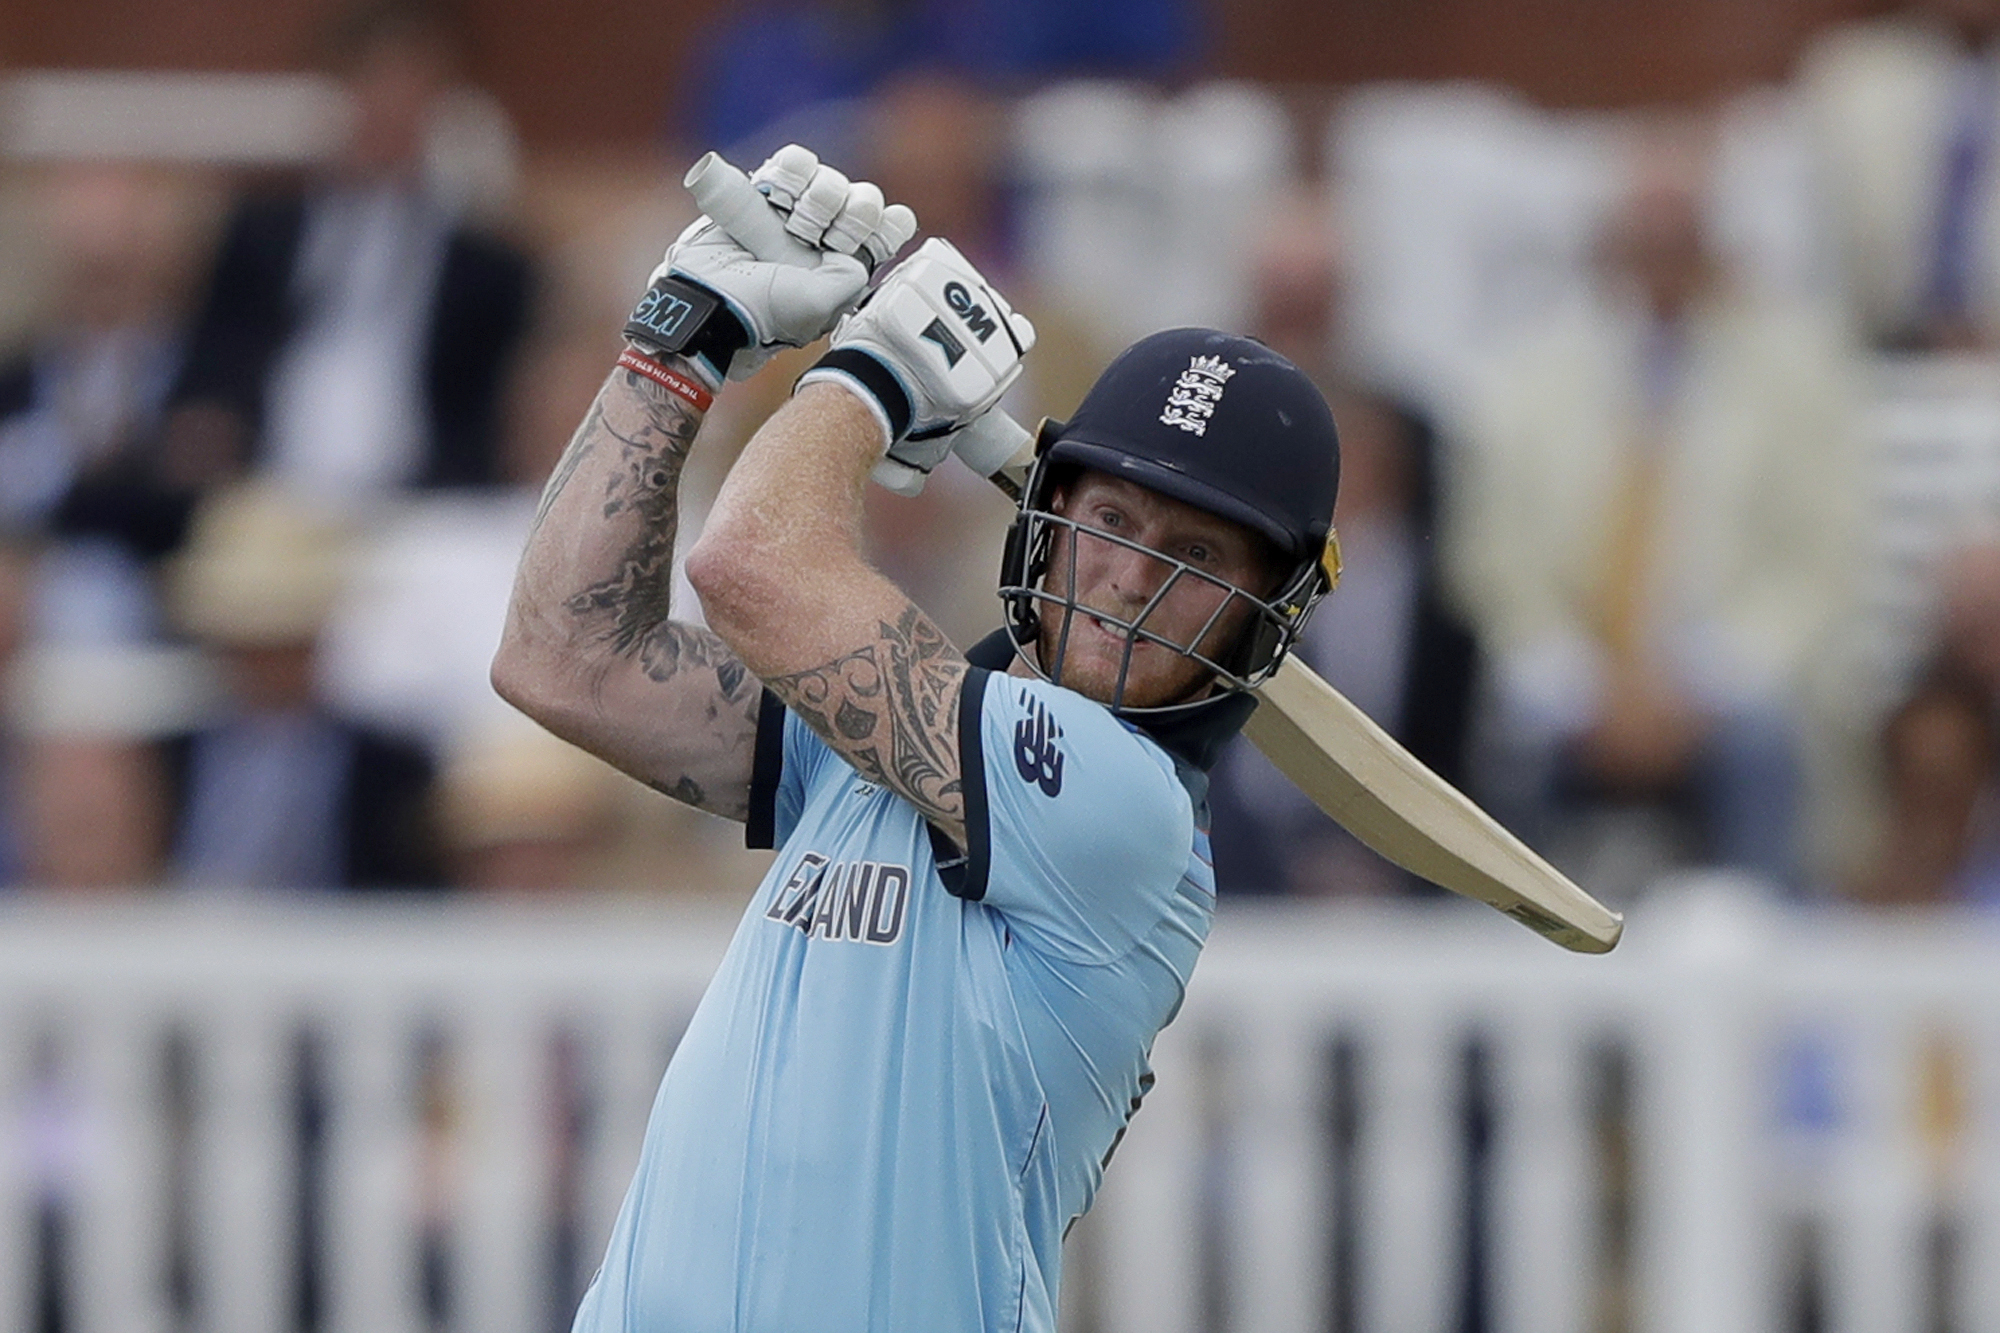 Stokes plays one of his many attacking shots during his innings. Image: PA Images